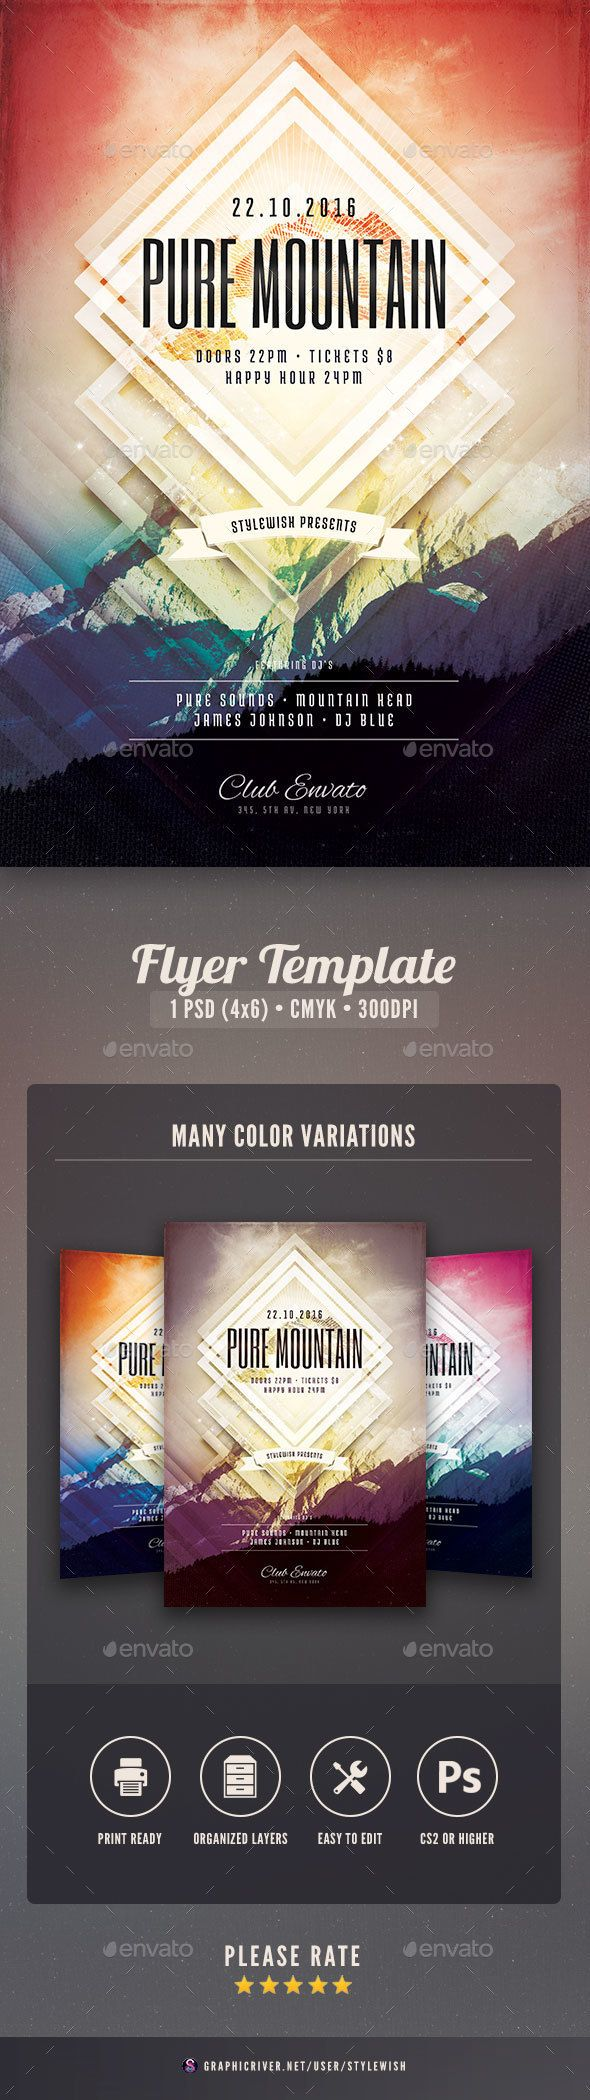 Flyer Samples Templates Entrancing Pure Mountain Flyer  Pinterest  Flyer Template Template And .